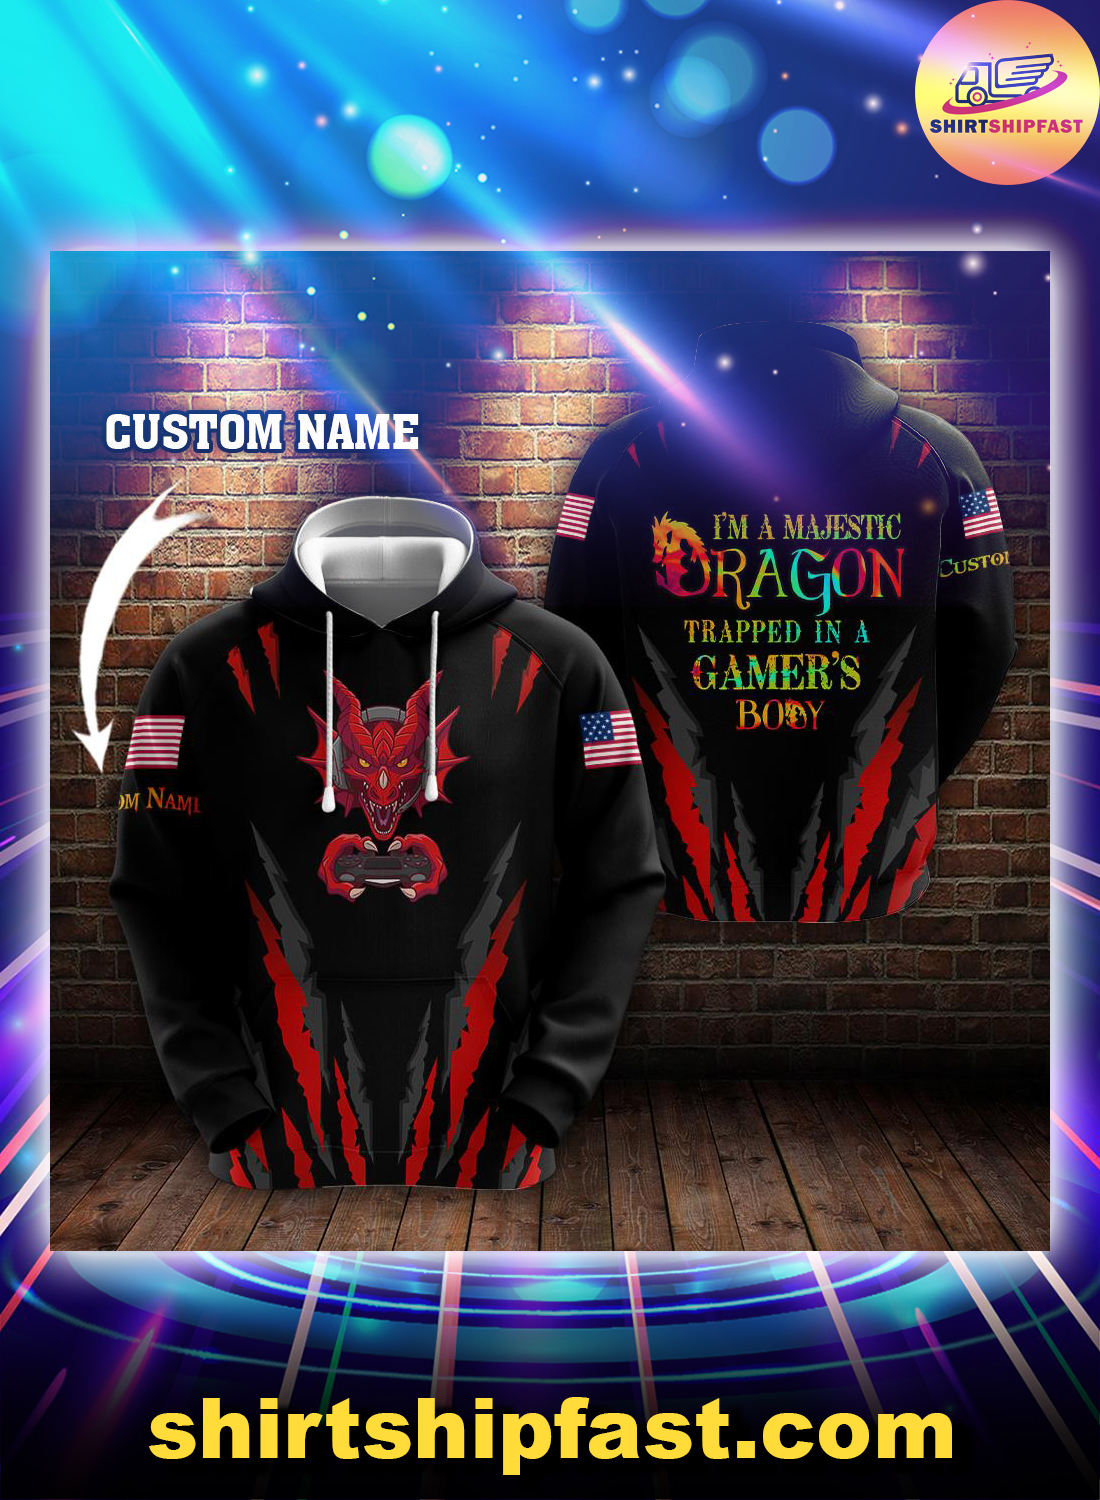 I'm a majestic dragon trapped in a gamer's body custom name 3d hoodie